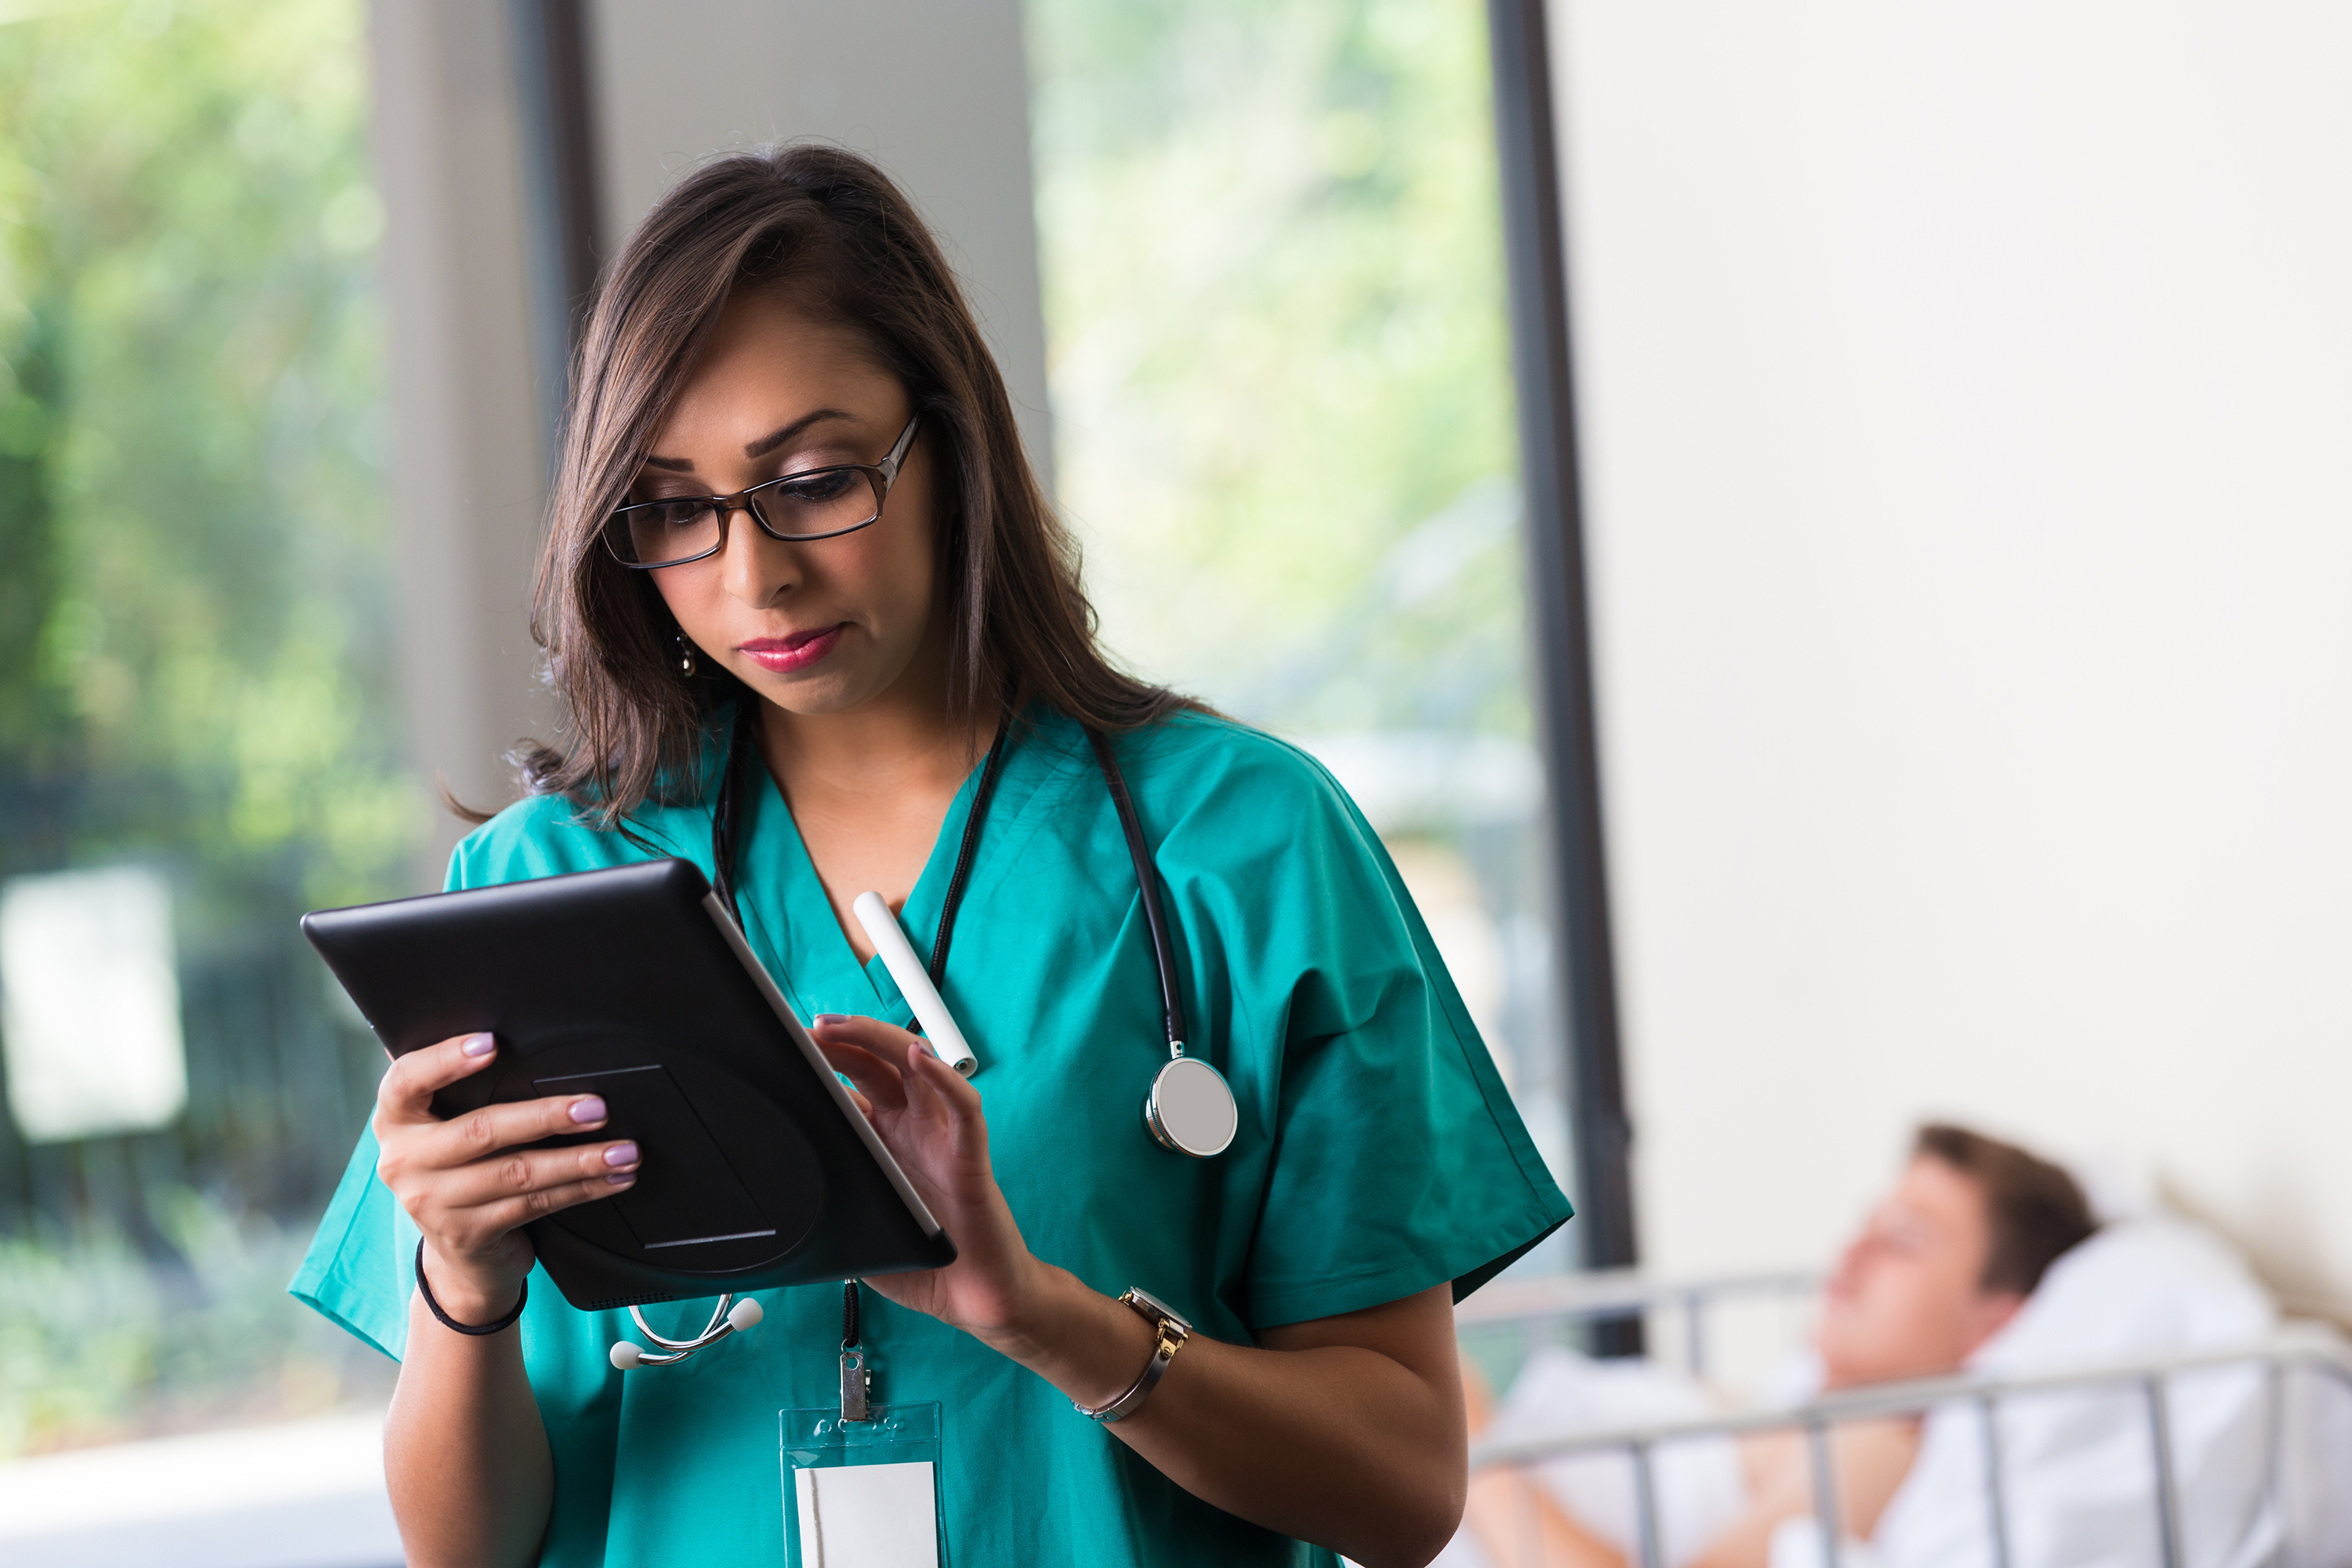 doctor checks patient assessment on ipad